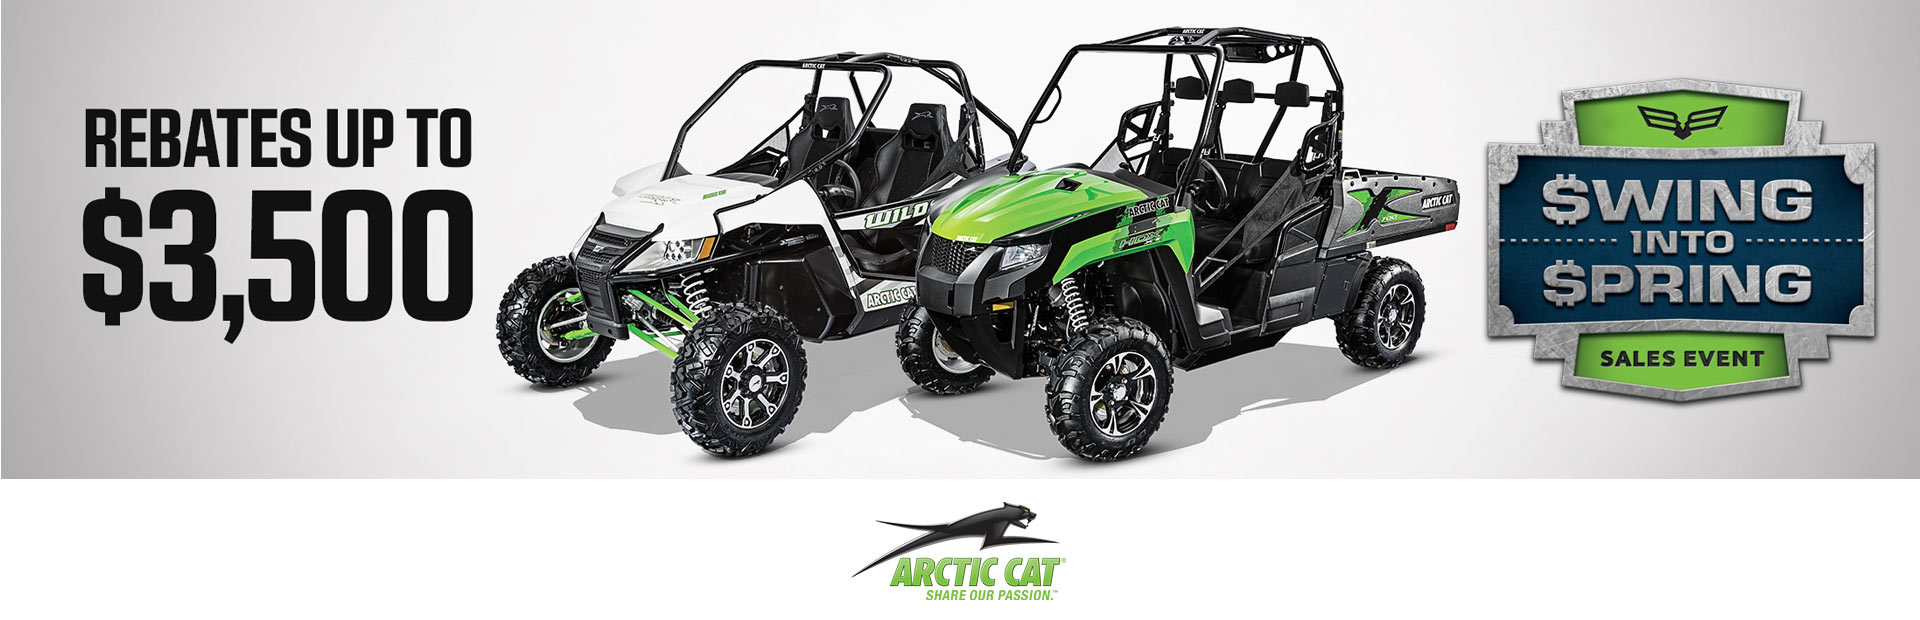 Arctic Cat: Swing Into Spring - SxS